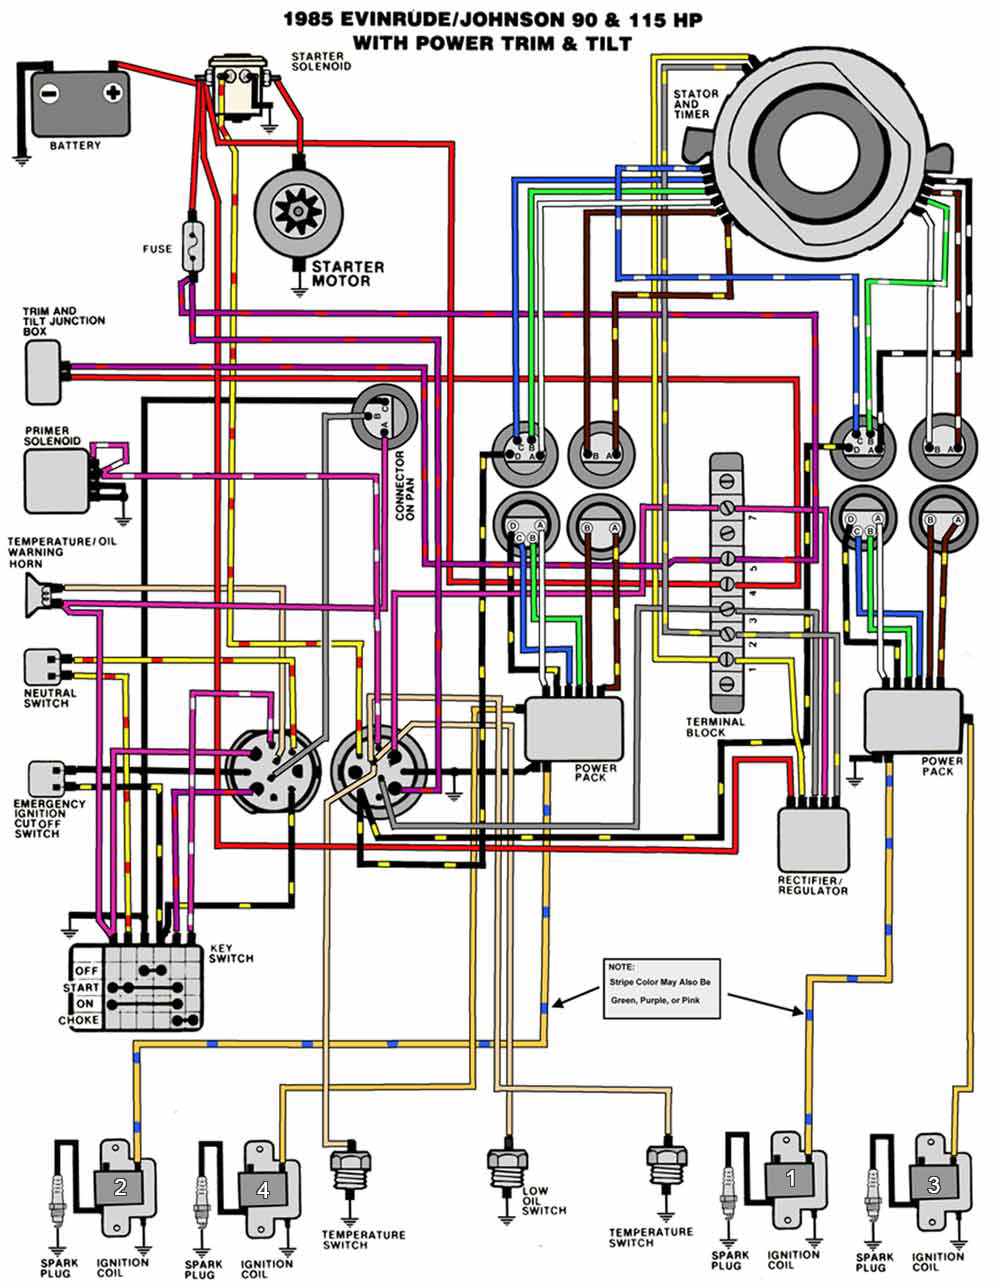 small resolution of mercury 50 hp wiring diagram wiring libraryjohnson outboard motor wiring diagram motorwallpapers org rh motorwallpapers org